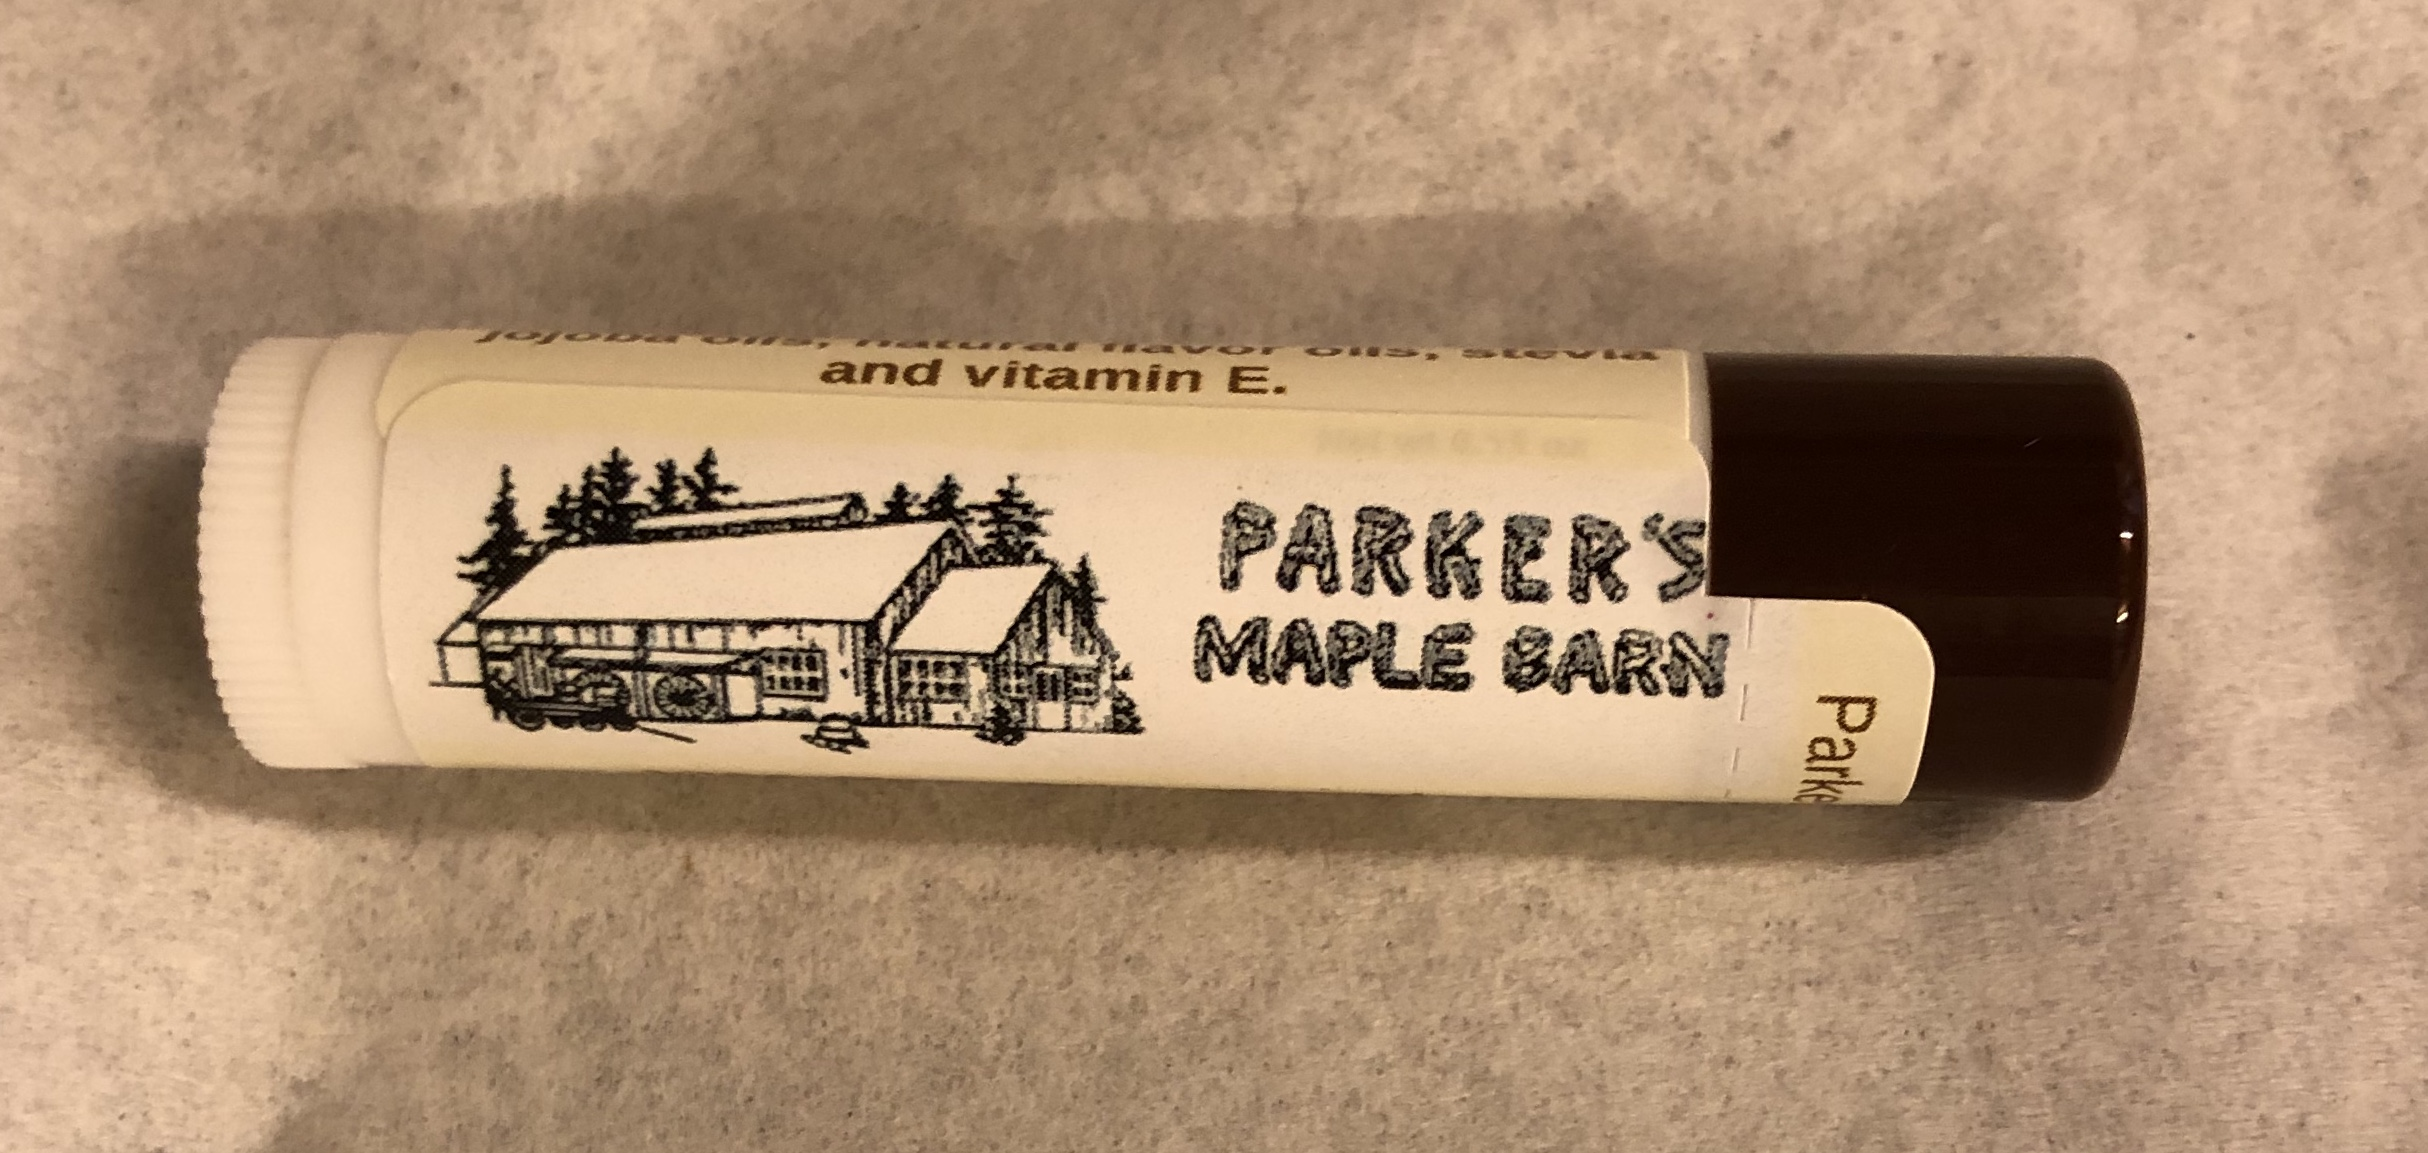 Parker's Maple Lip Balm